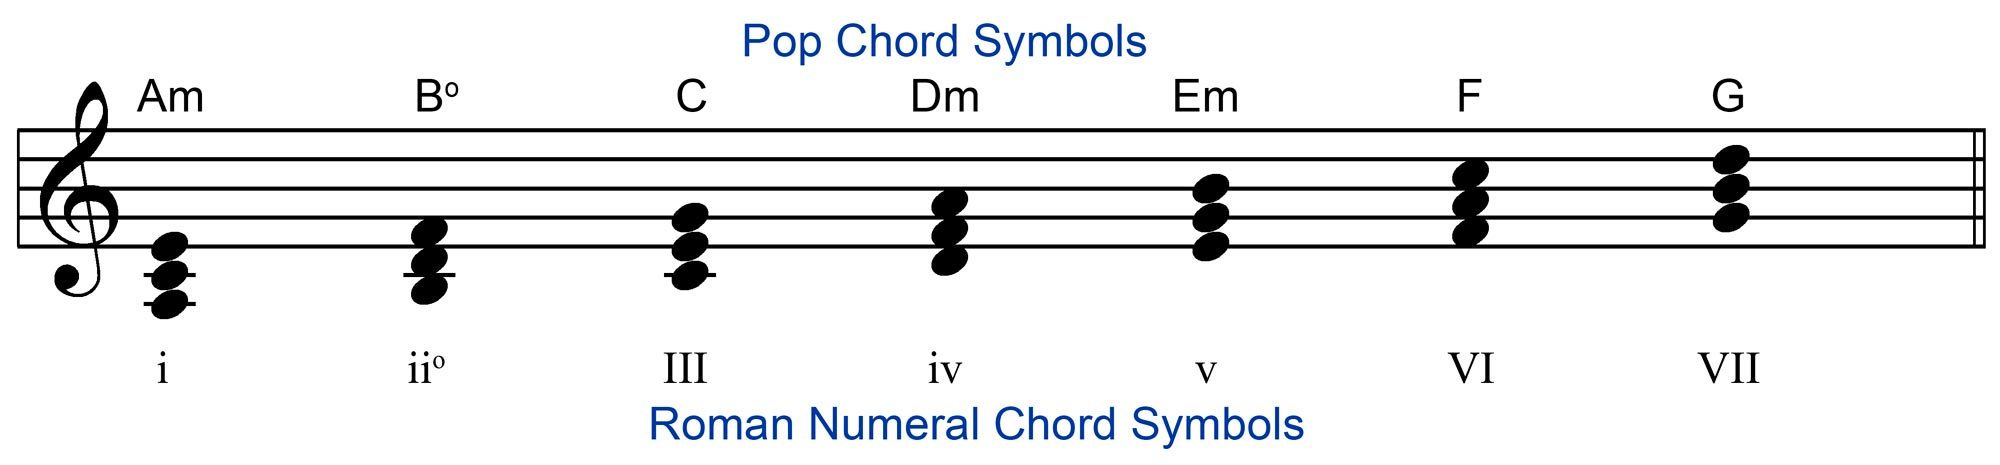 Diatonic Chords in the Key of A Natural Minor